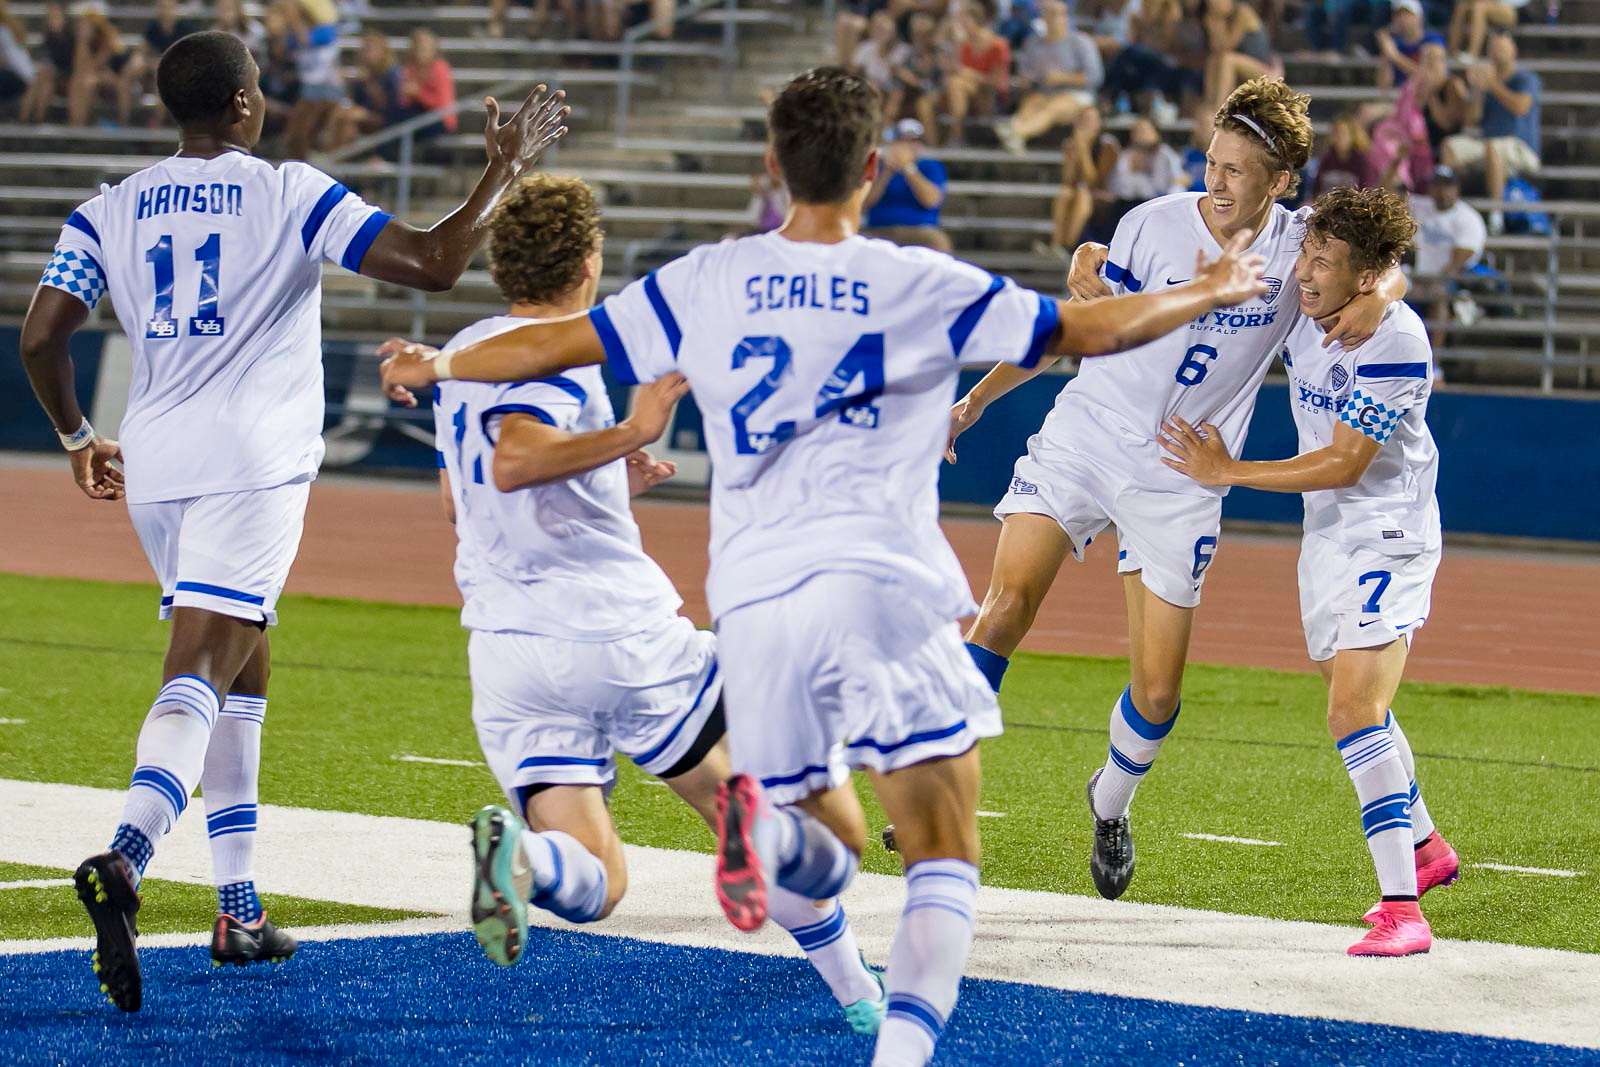 UB men's soccer celebrates a goal in 2015. The program will no longer exist after spring 2017 due to budget cuts. (Don Nieman/Special to The News)